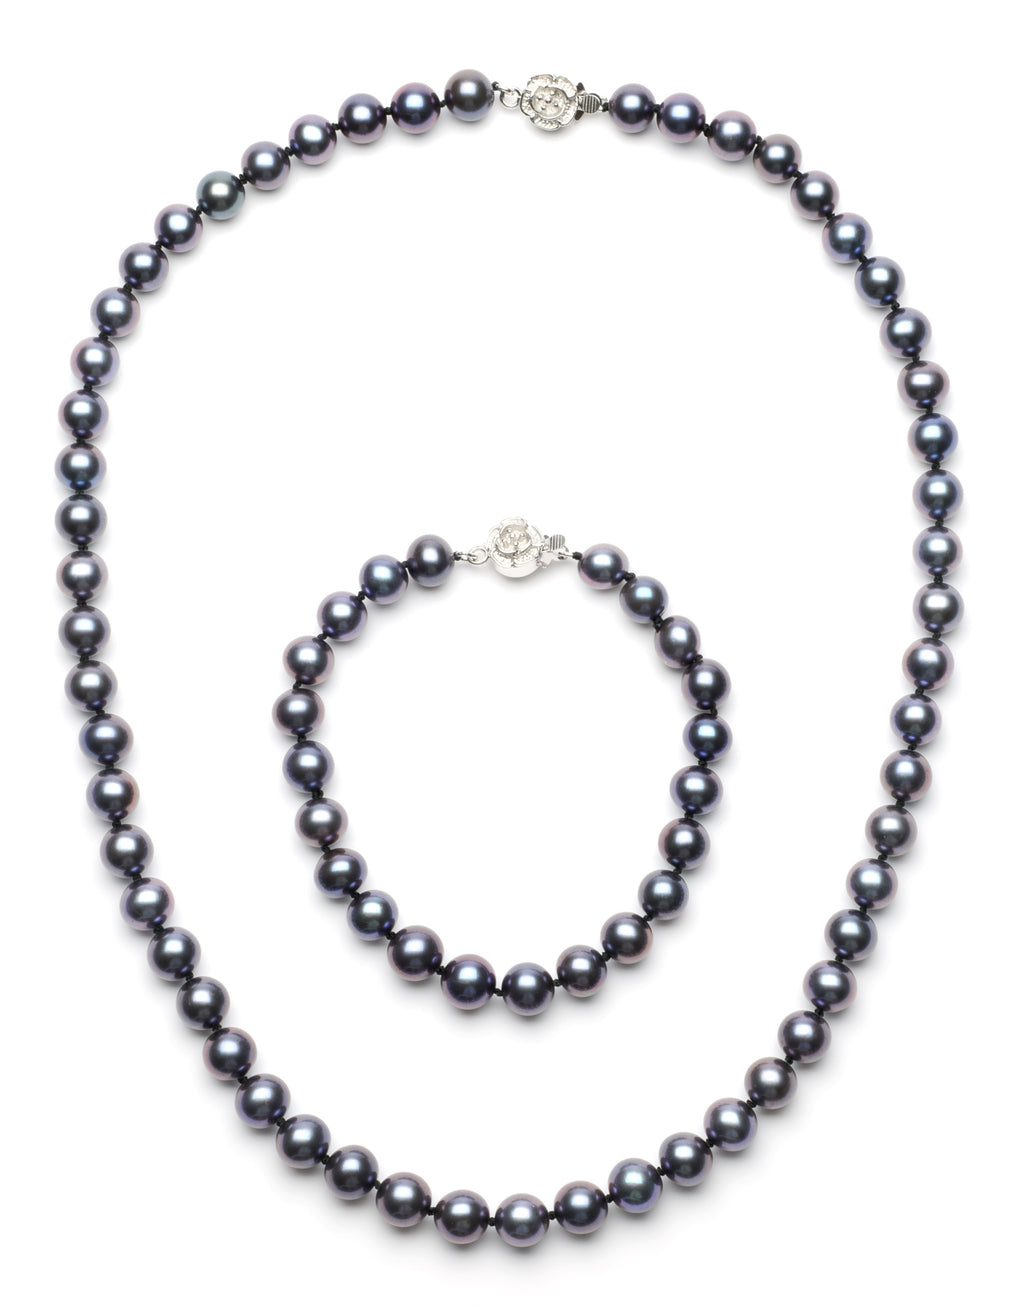 Necklace/Bracelet Set 8.0-9.0 mm Black Freshwater Pearls